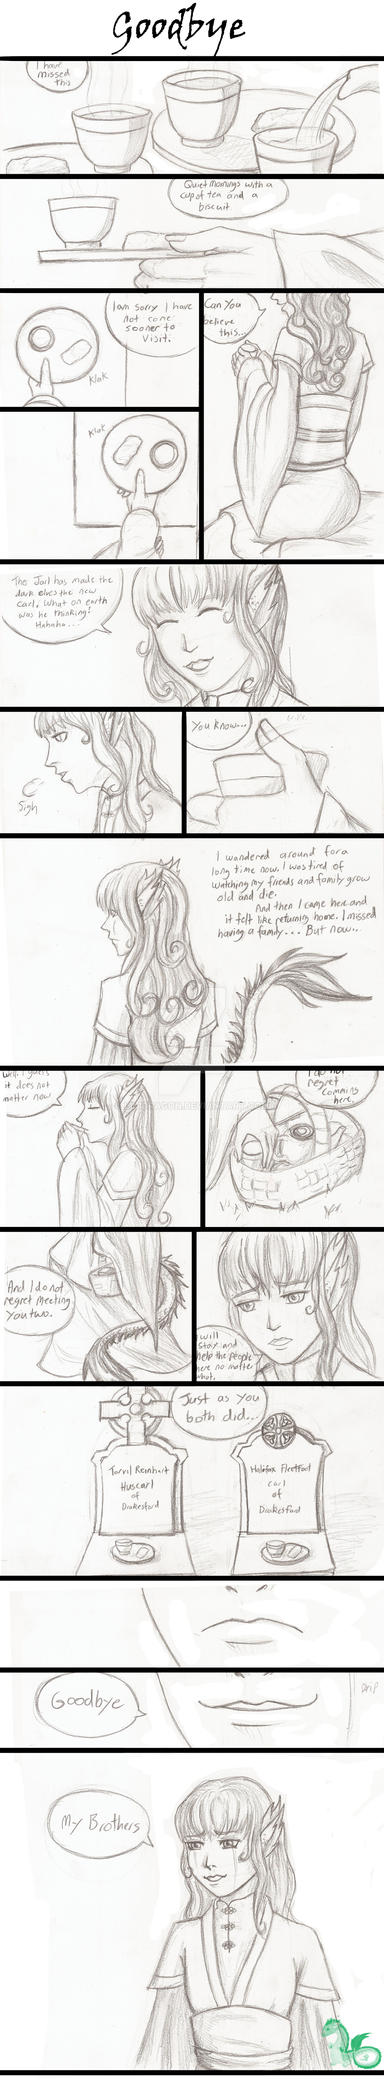 Comic Short: 'Goodbye' by Lil1Dragon